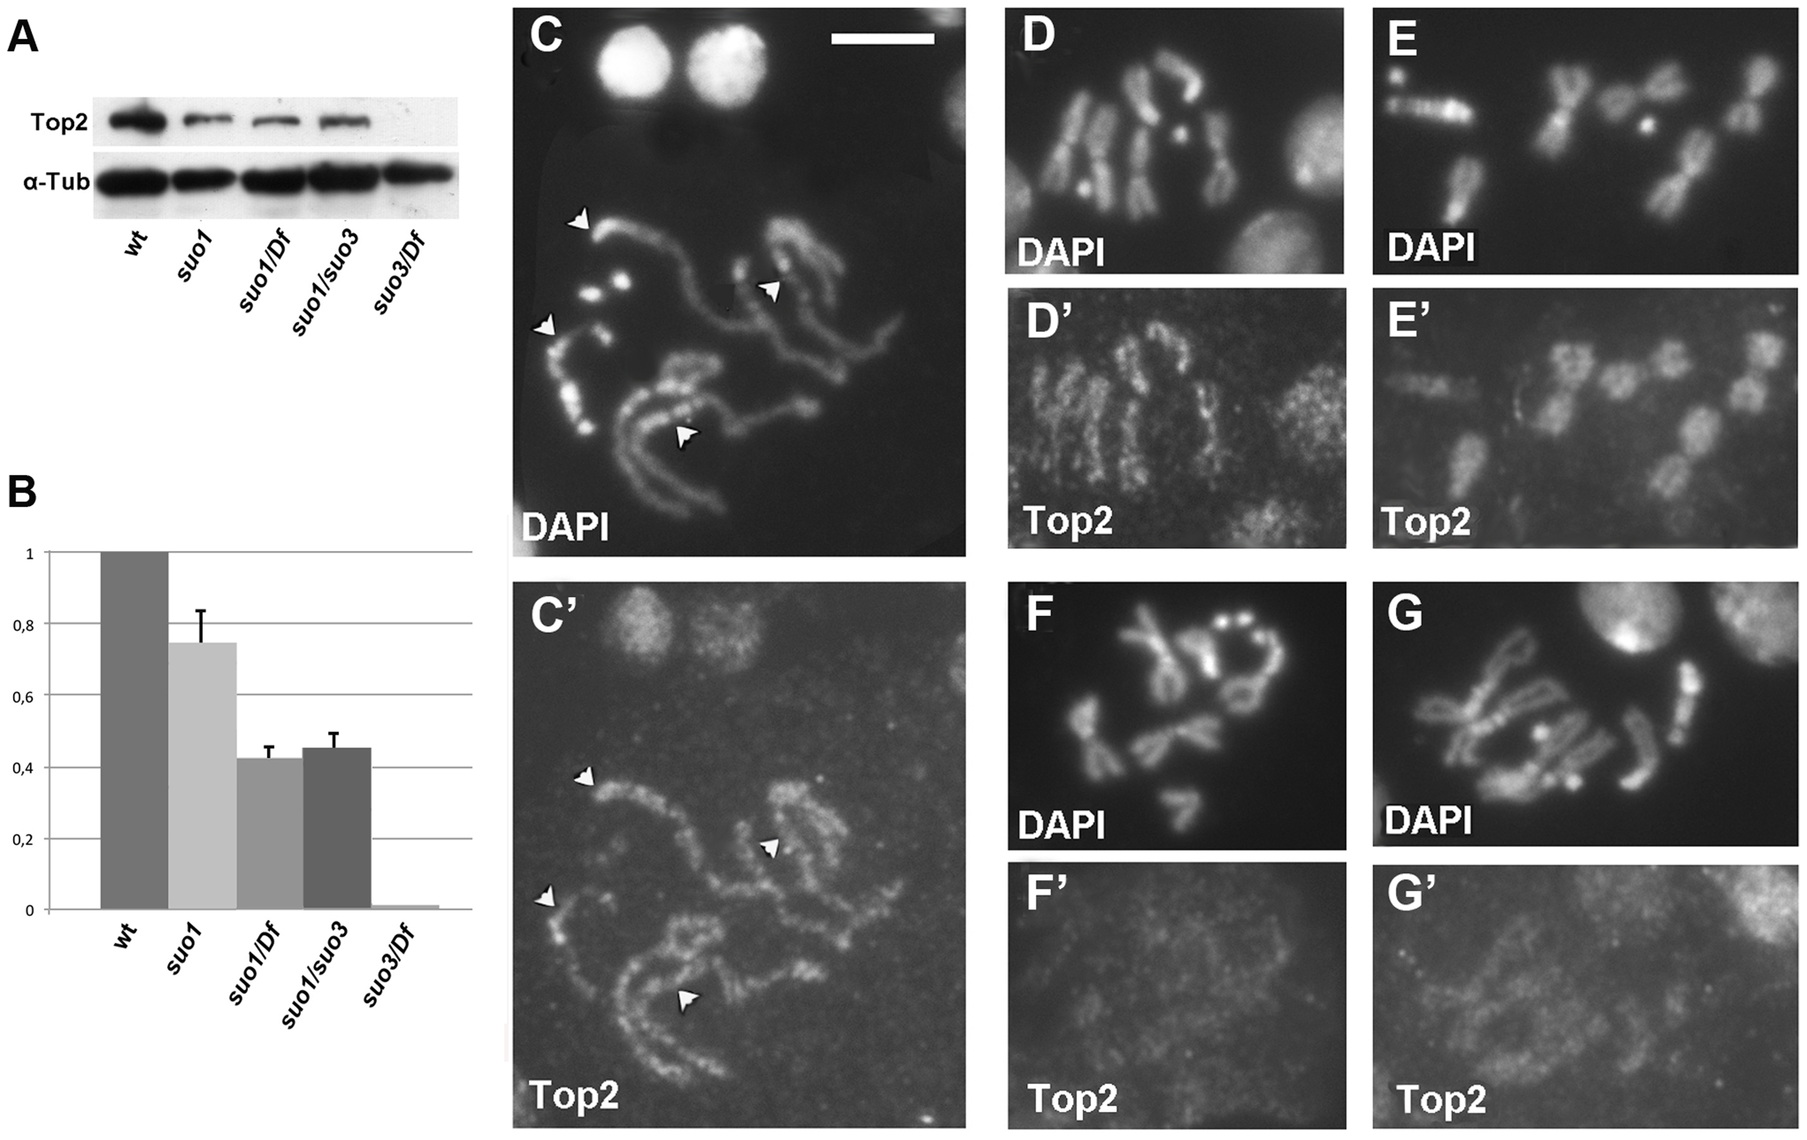 Top2 localization in wild type and <i>Top2</i> mutant larval brain cells.